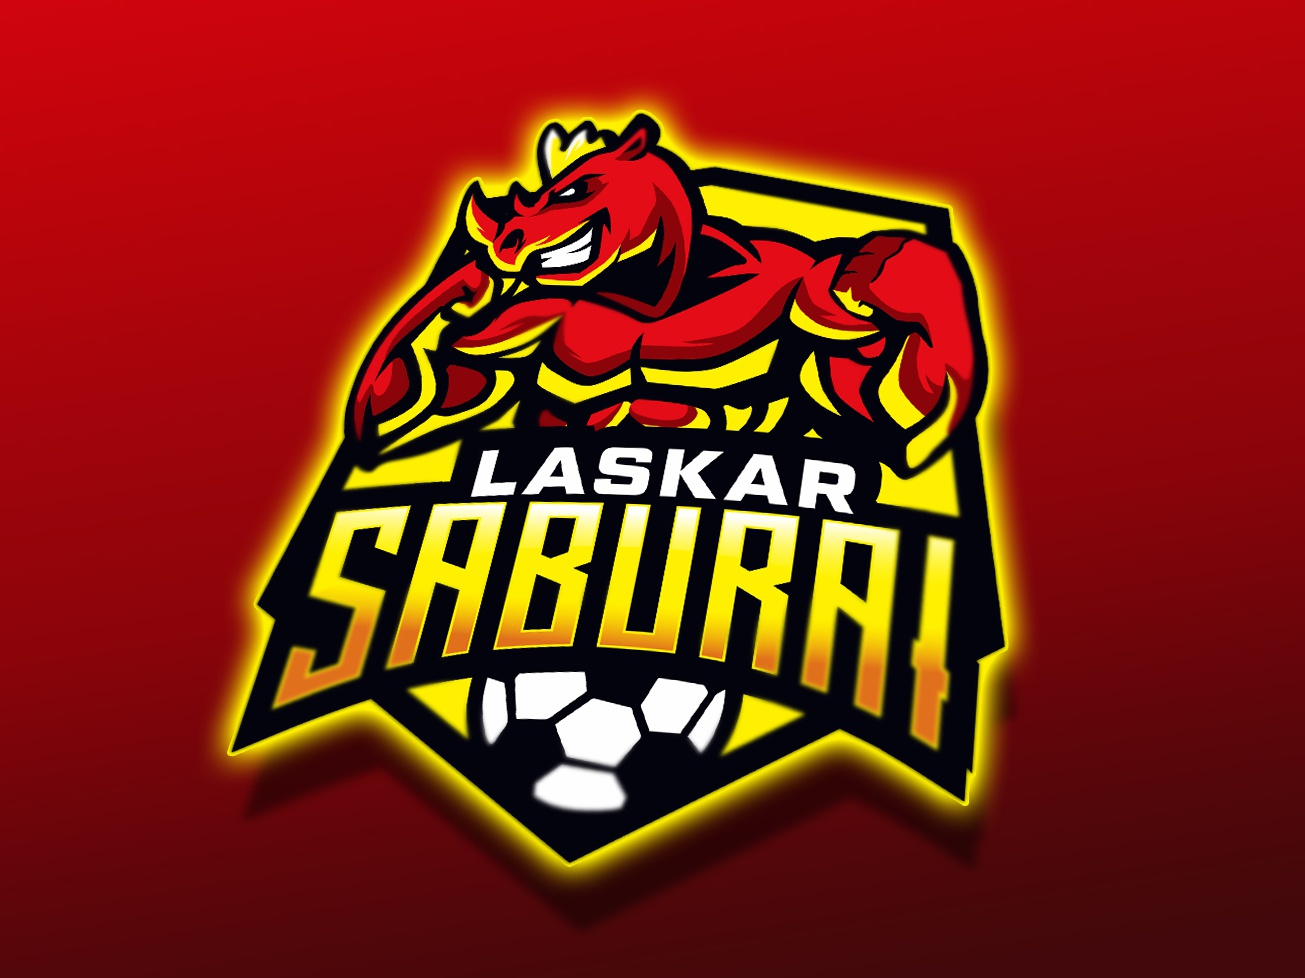 tribute to badak lampung FC dailylogo animal graphic badge logo badgedesign badge esport char mascot brand identity vector design logo soccer badge indonesia lampung liga1 football team